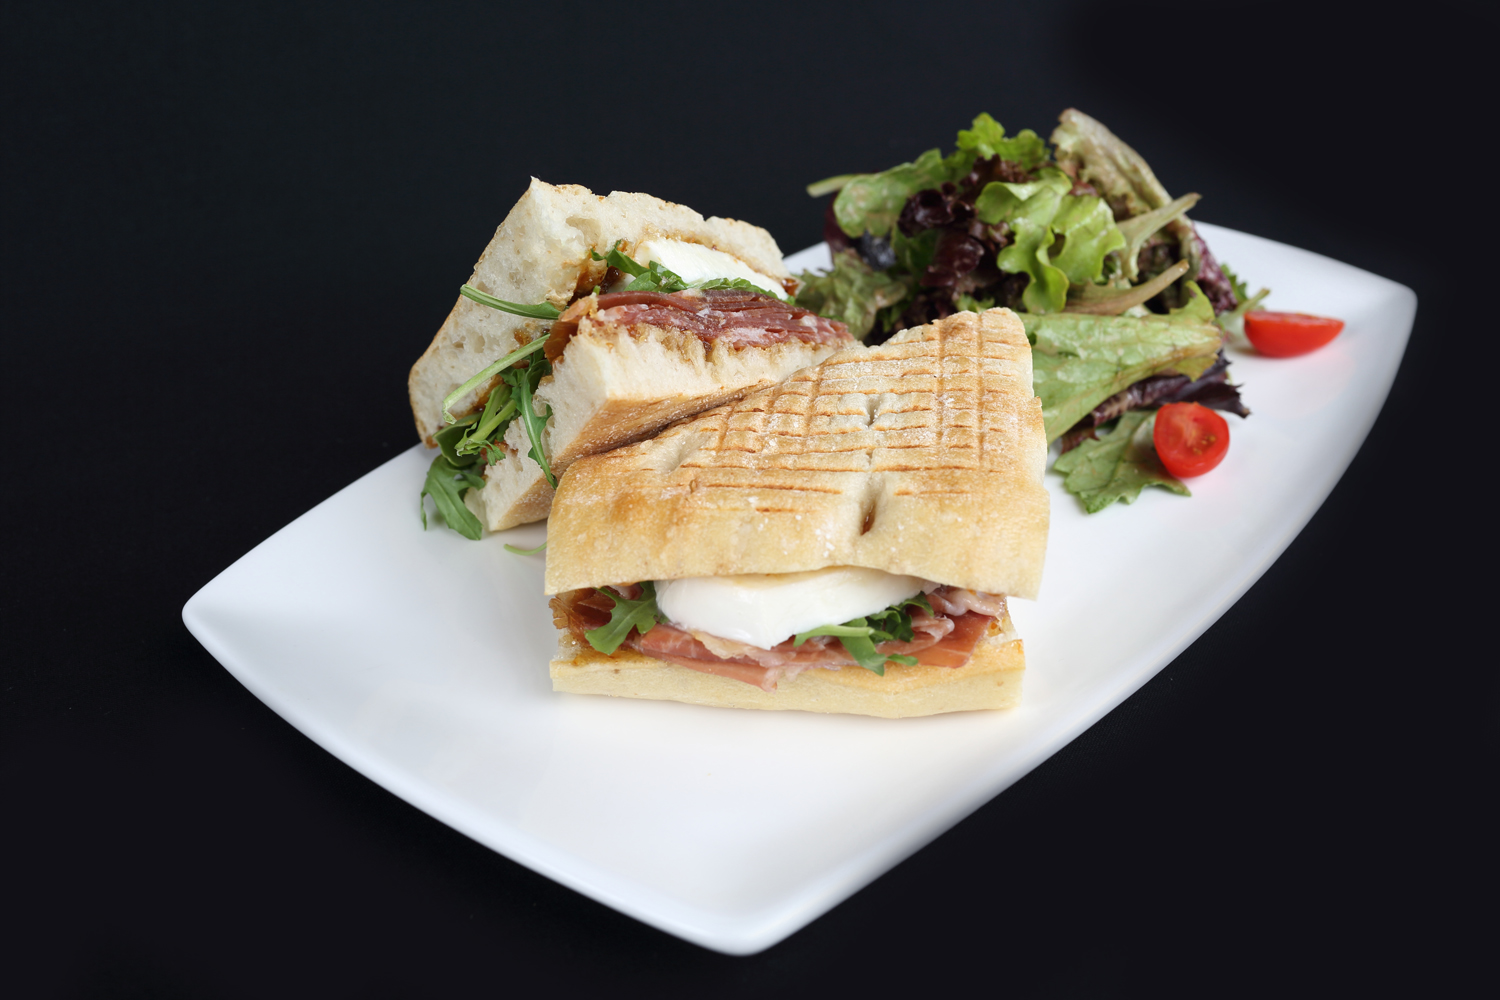 Fig Prosciutto On Focaccia - Angry Moon Cafe and Wine Bar, Palm Beach Gardens, FL 33410